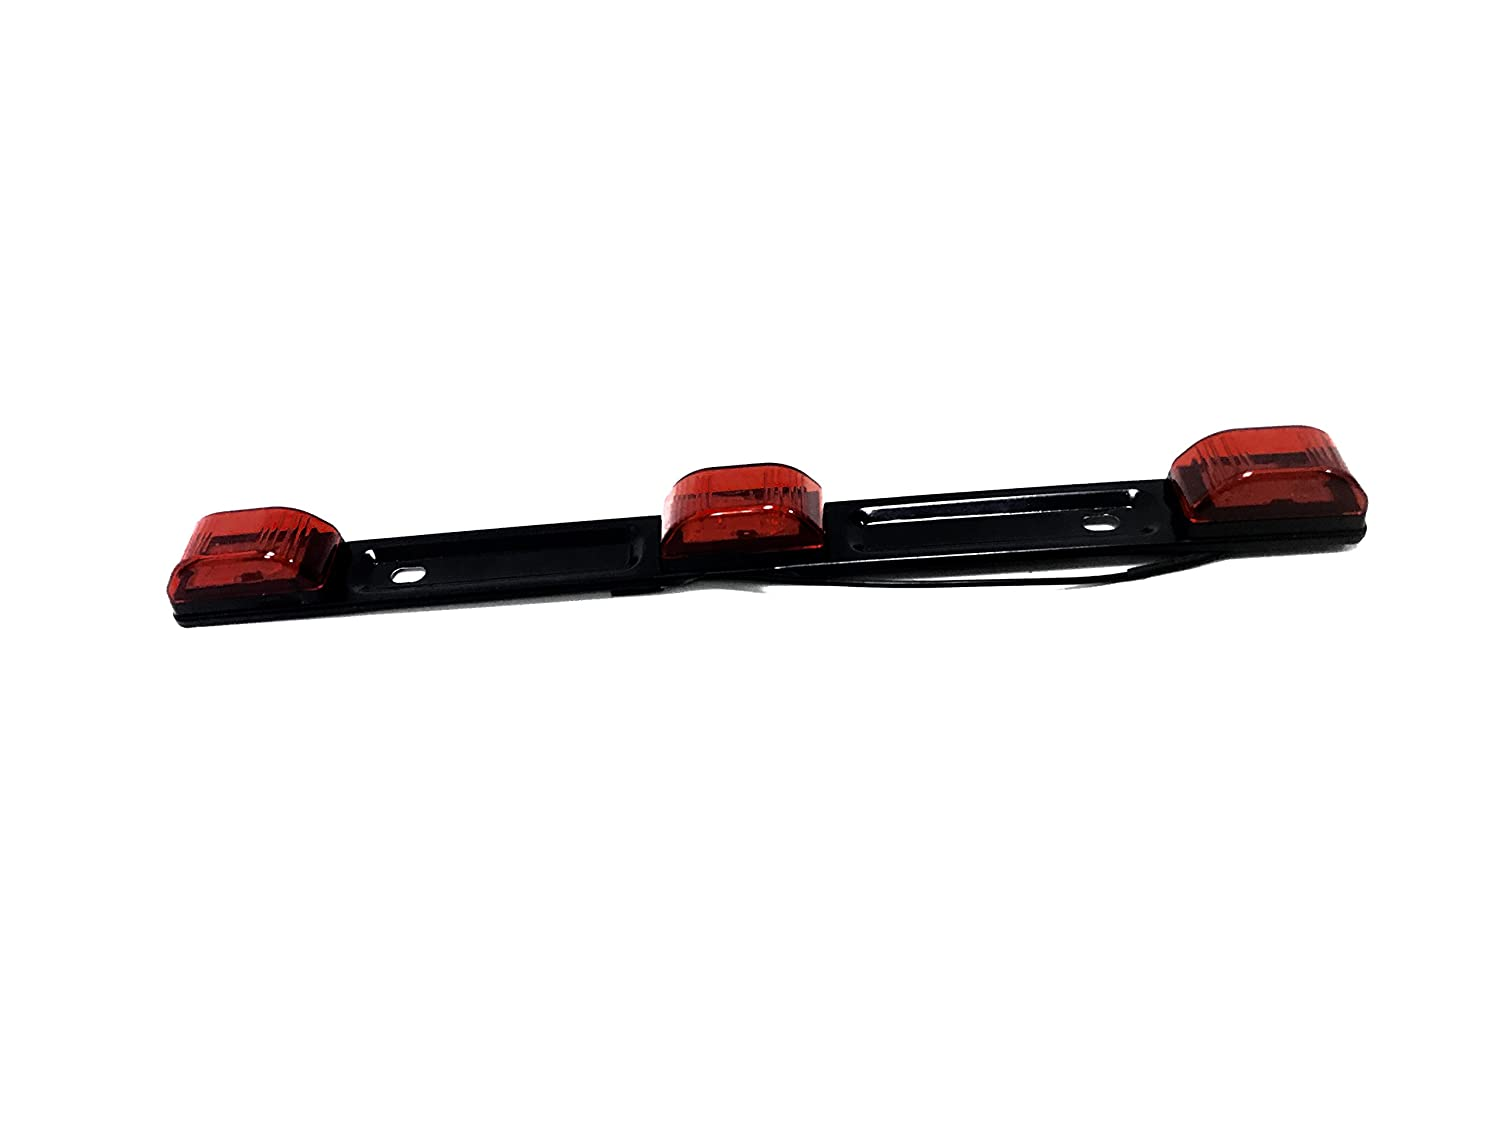 Waterproof, Sealed /& Stainless Steel Base, Truck//Trailer MaxxHaul 70449 Red LED Clearance Identification Light Bar